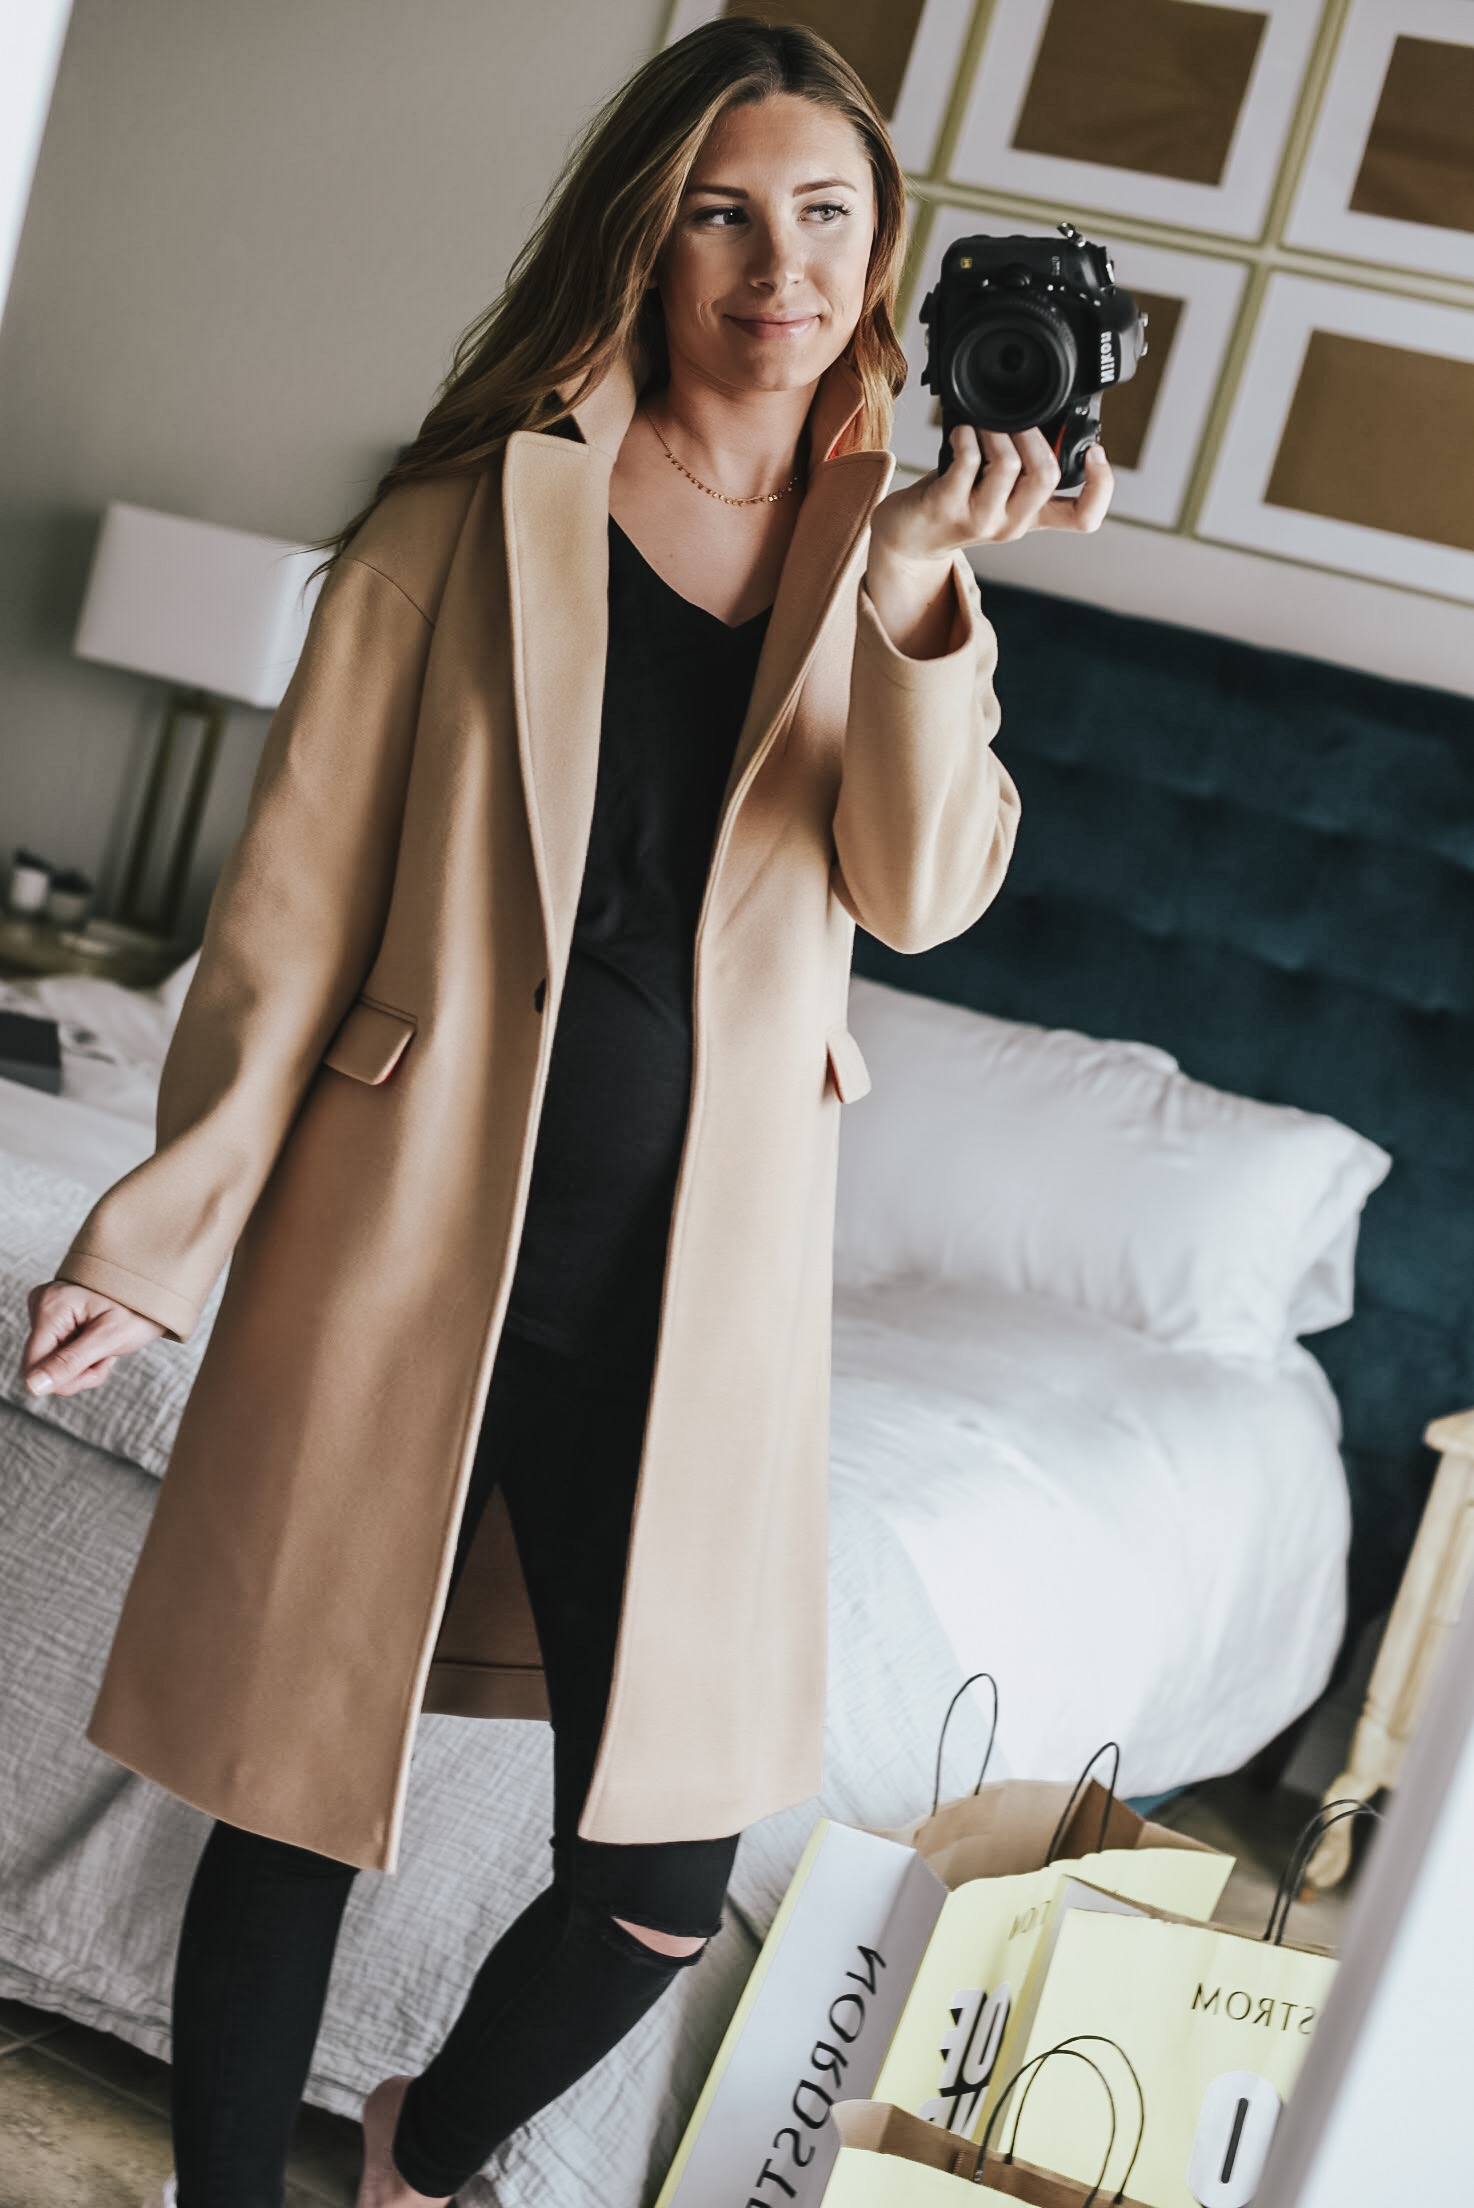 Shopbop Trench Coat - Nordstrom Anniversary Sale